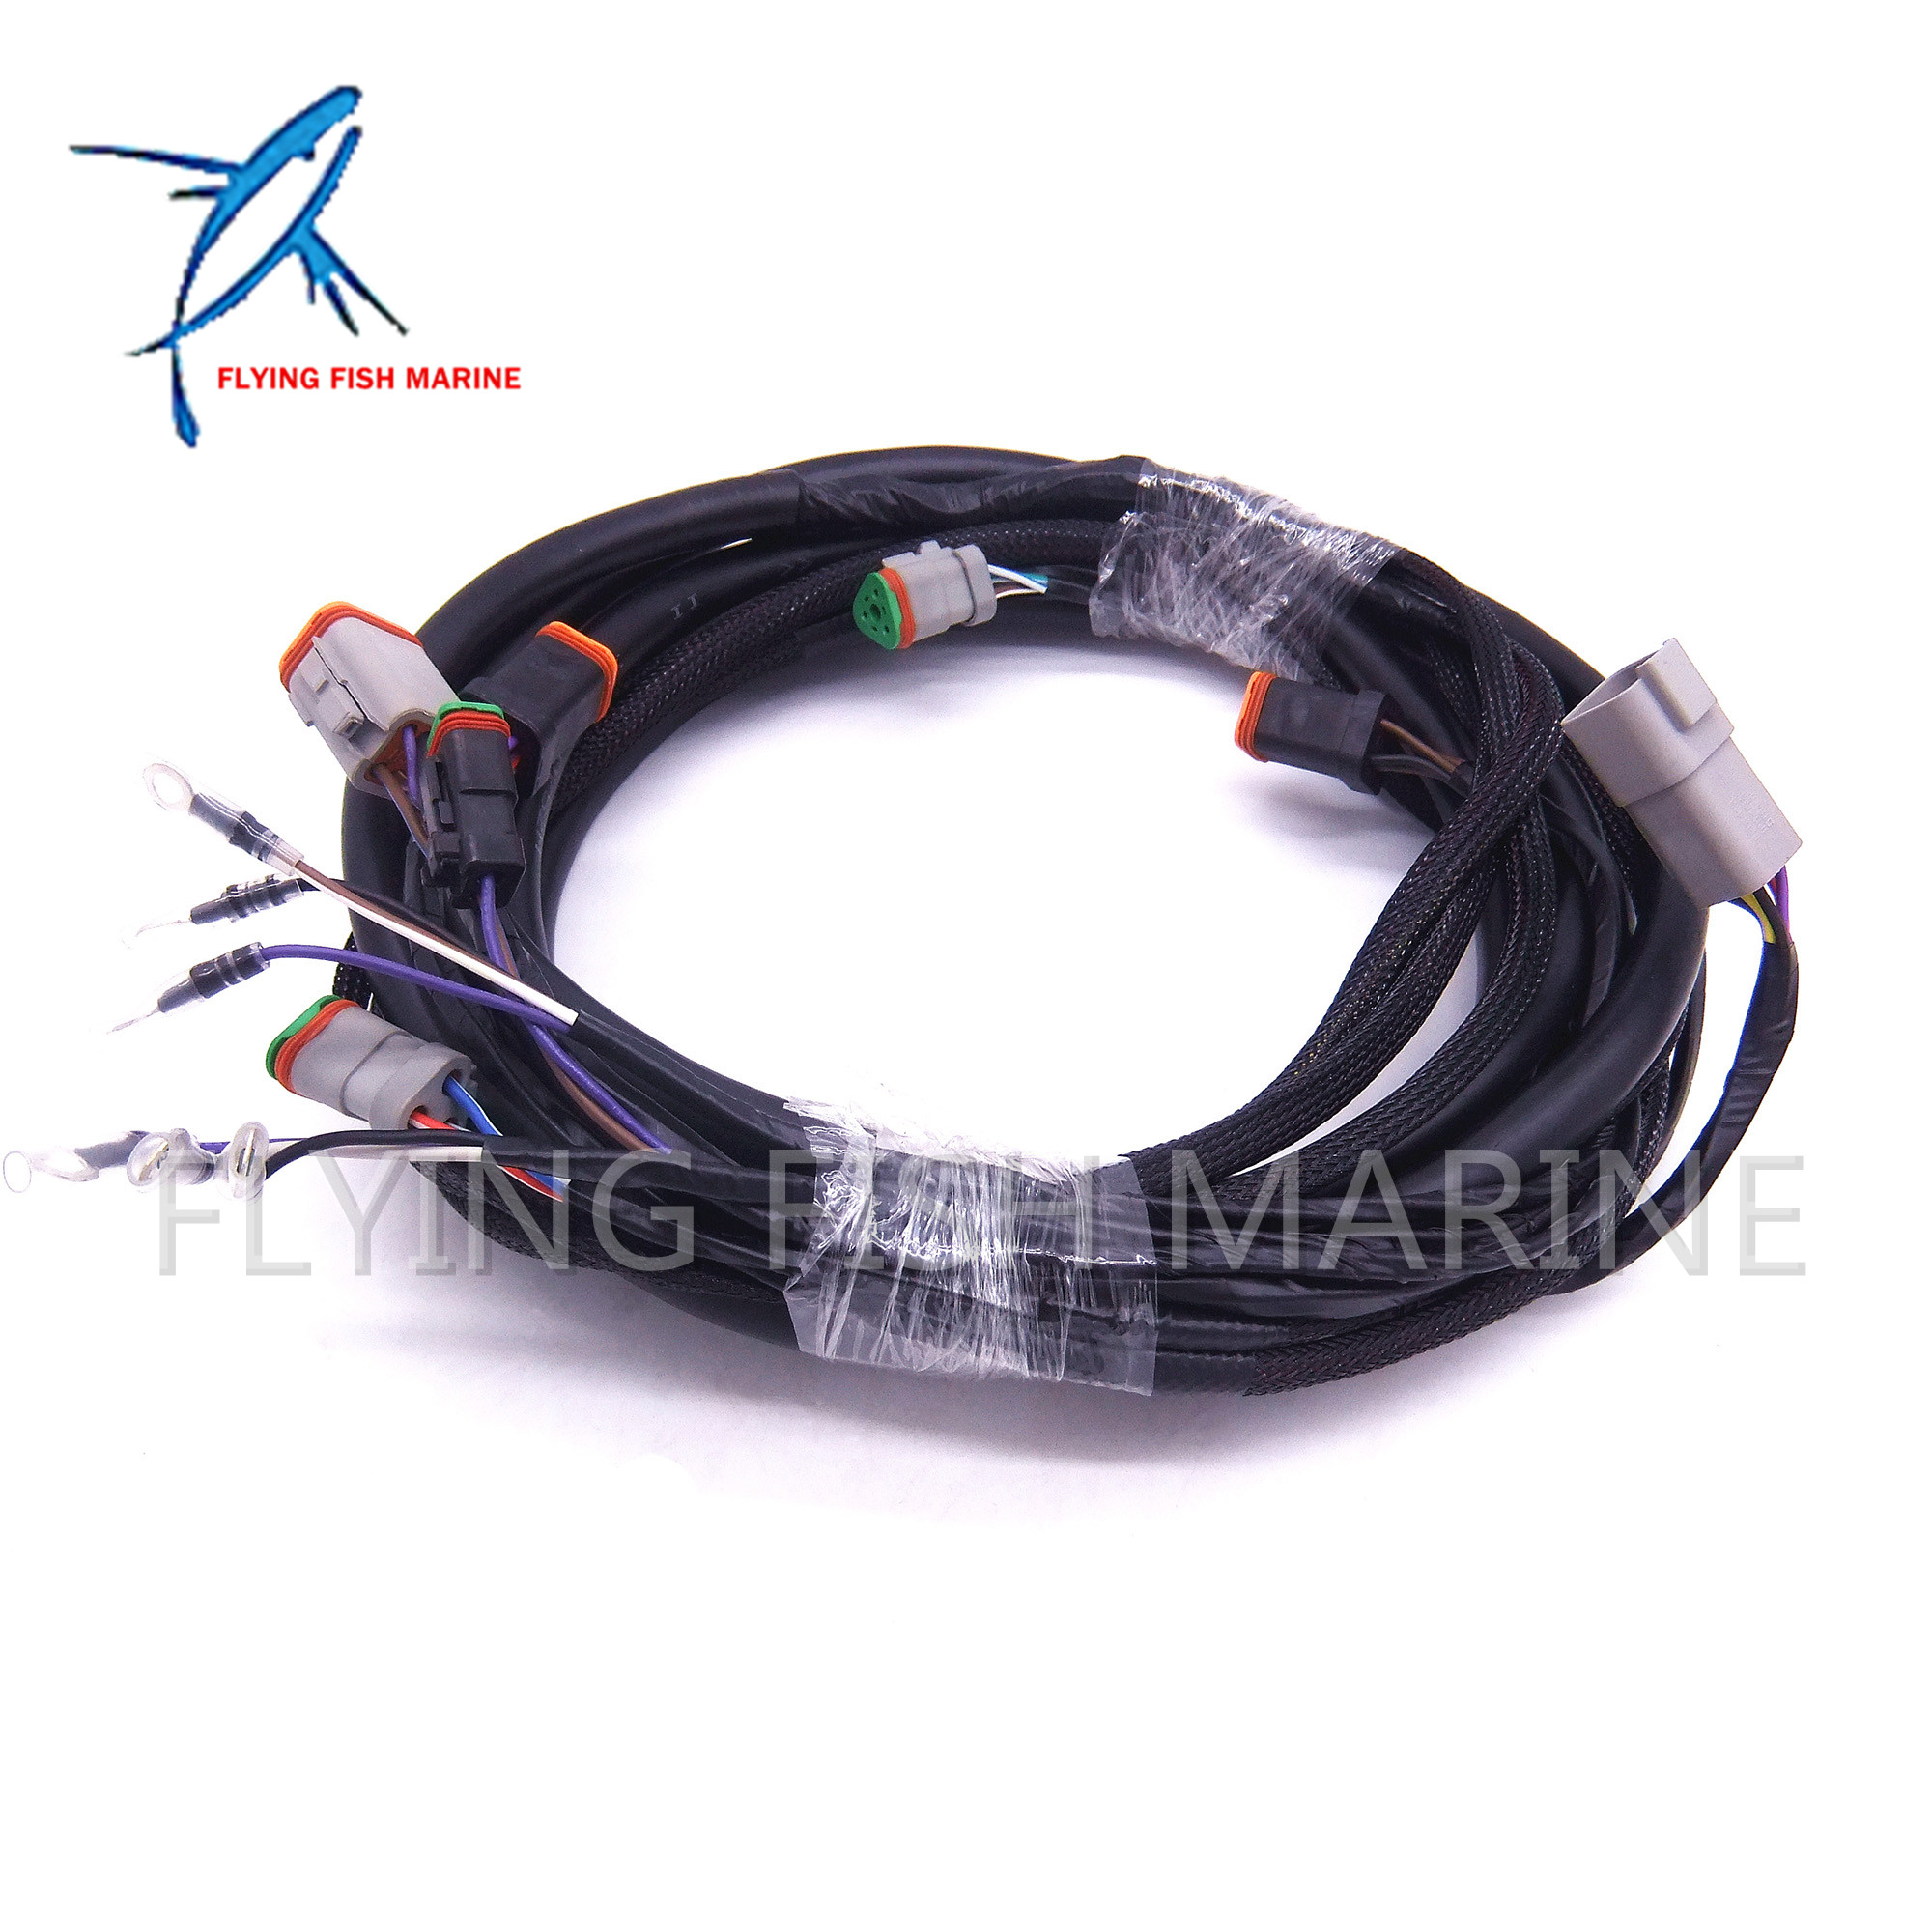 medium resolution of 0176340 176340 new systemcheck 15ft main modular ignition wiring harness cable for evinrude johnson omc outboard